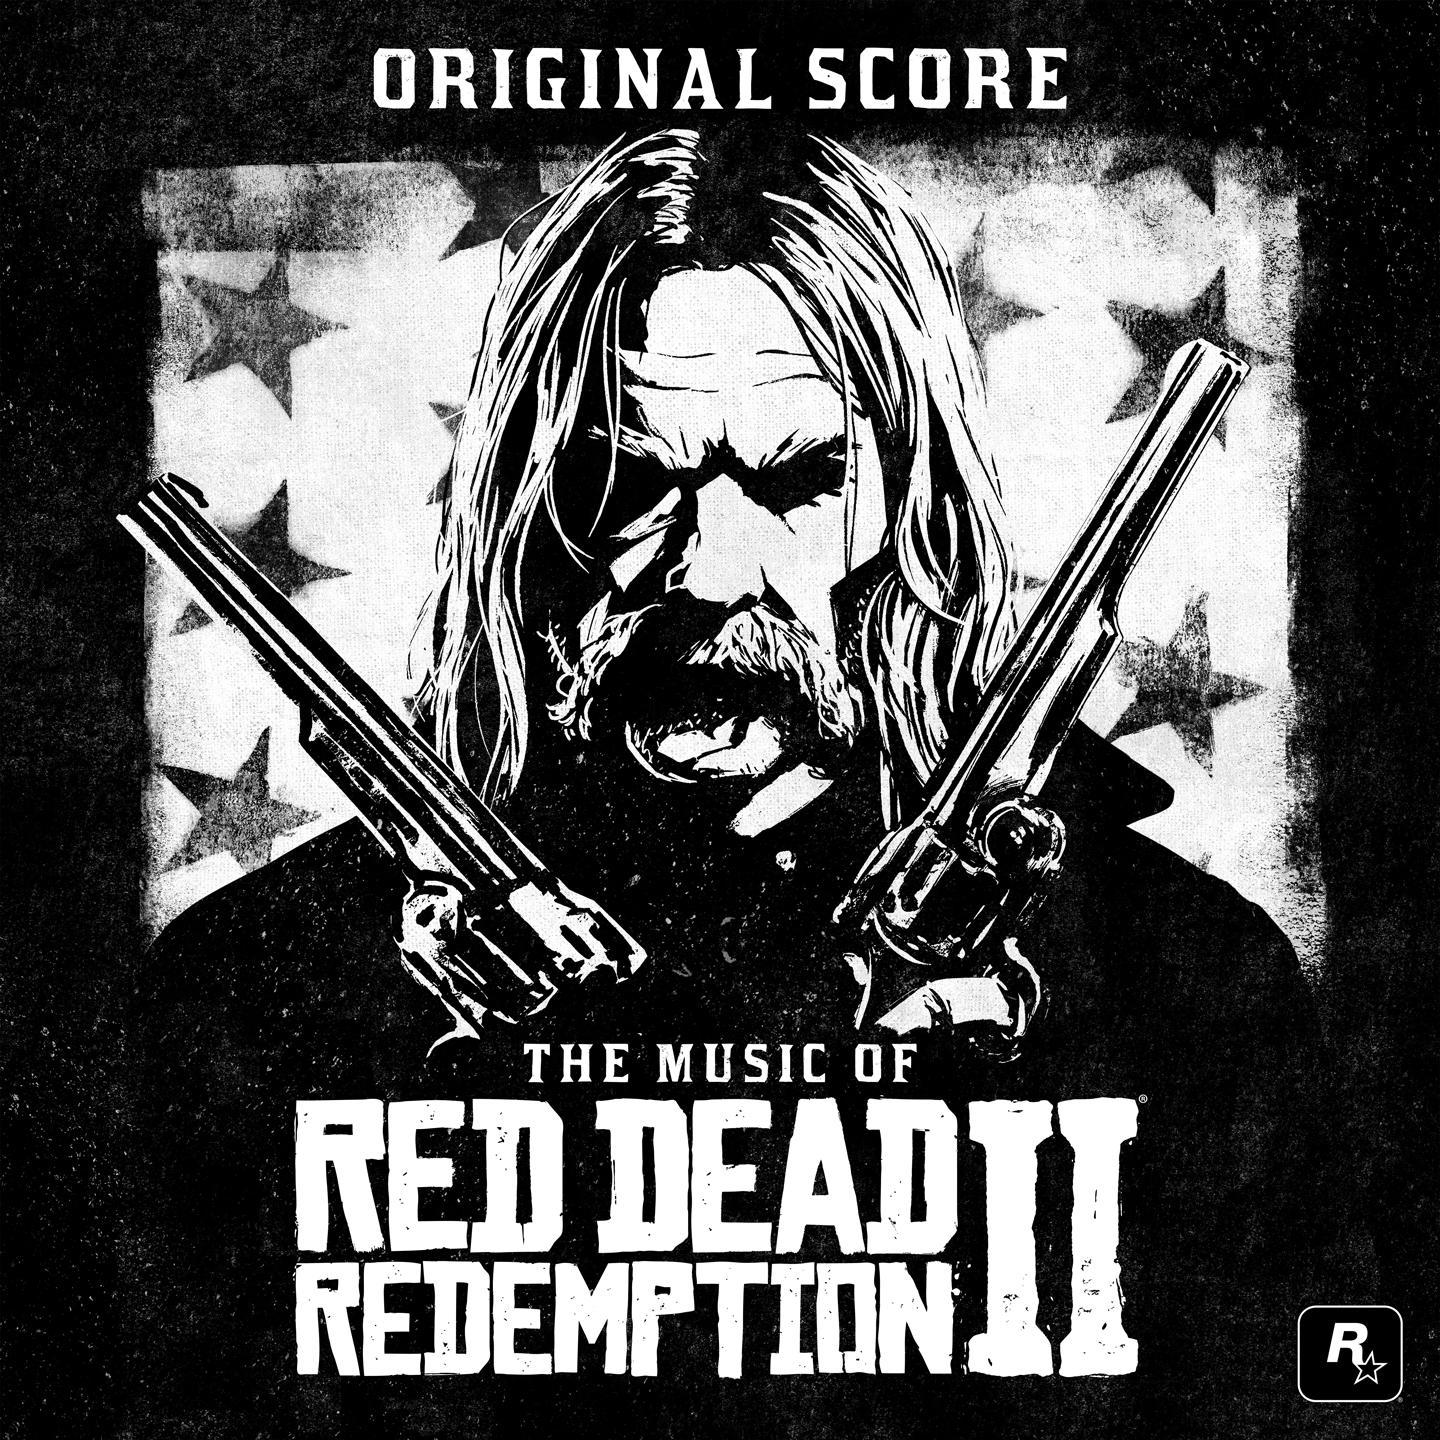 Rdr2 Main Artworks Red Dead Redemption 2 Artworks Wallpapers